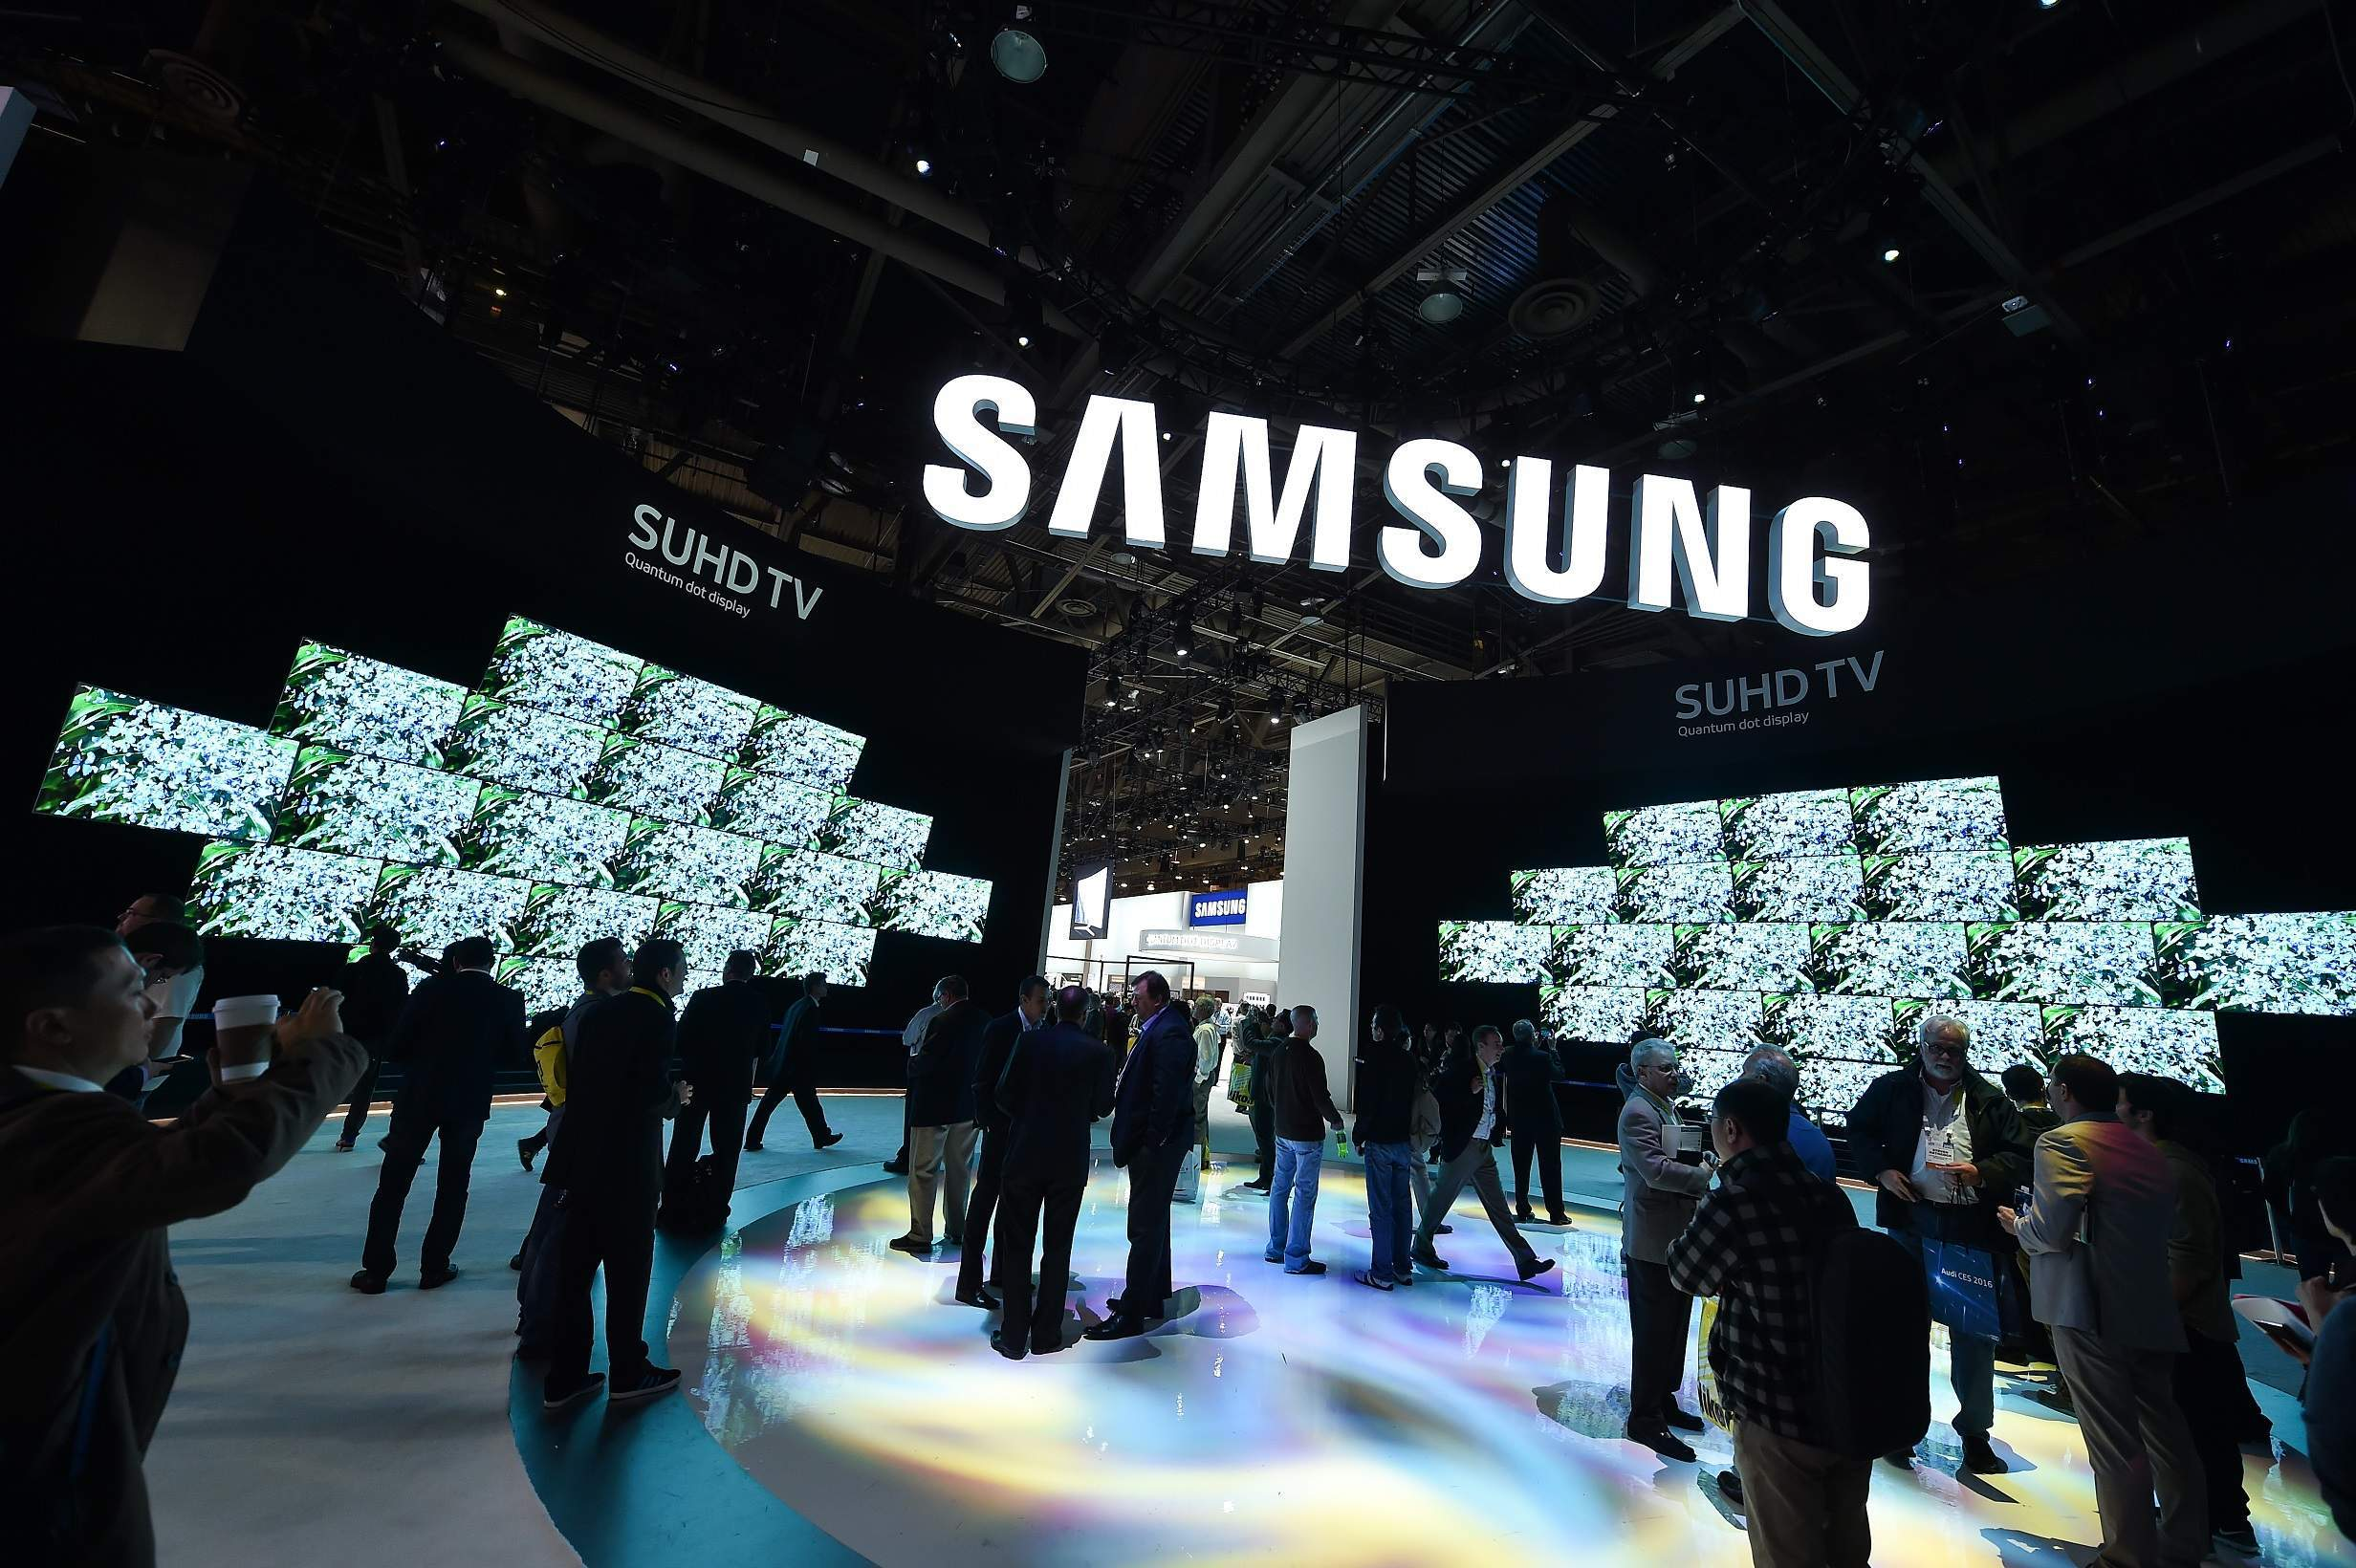 Bribery, embezzlement and perjury: Samsung's leader is in trouble